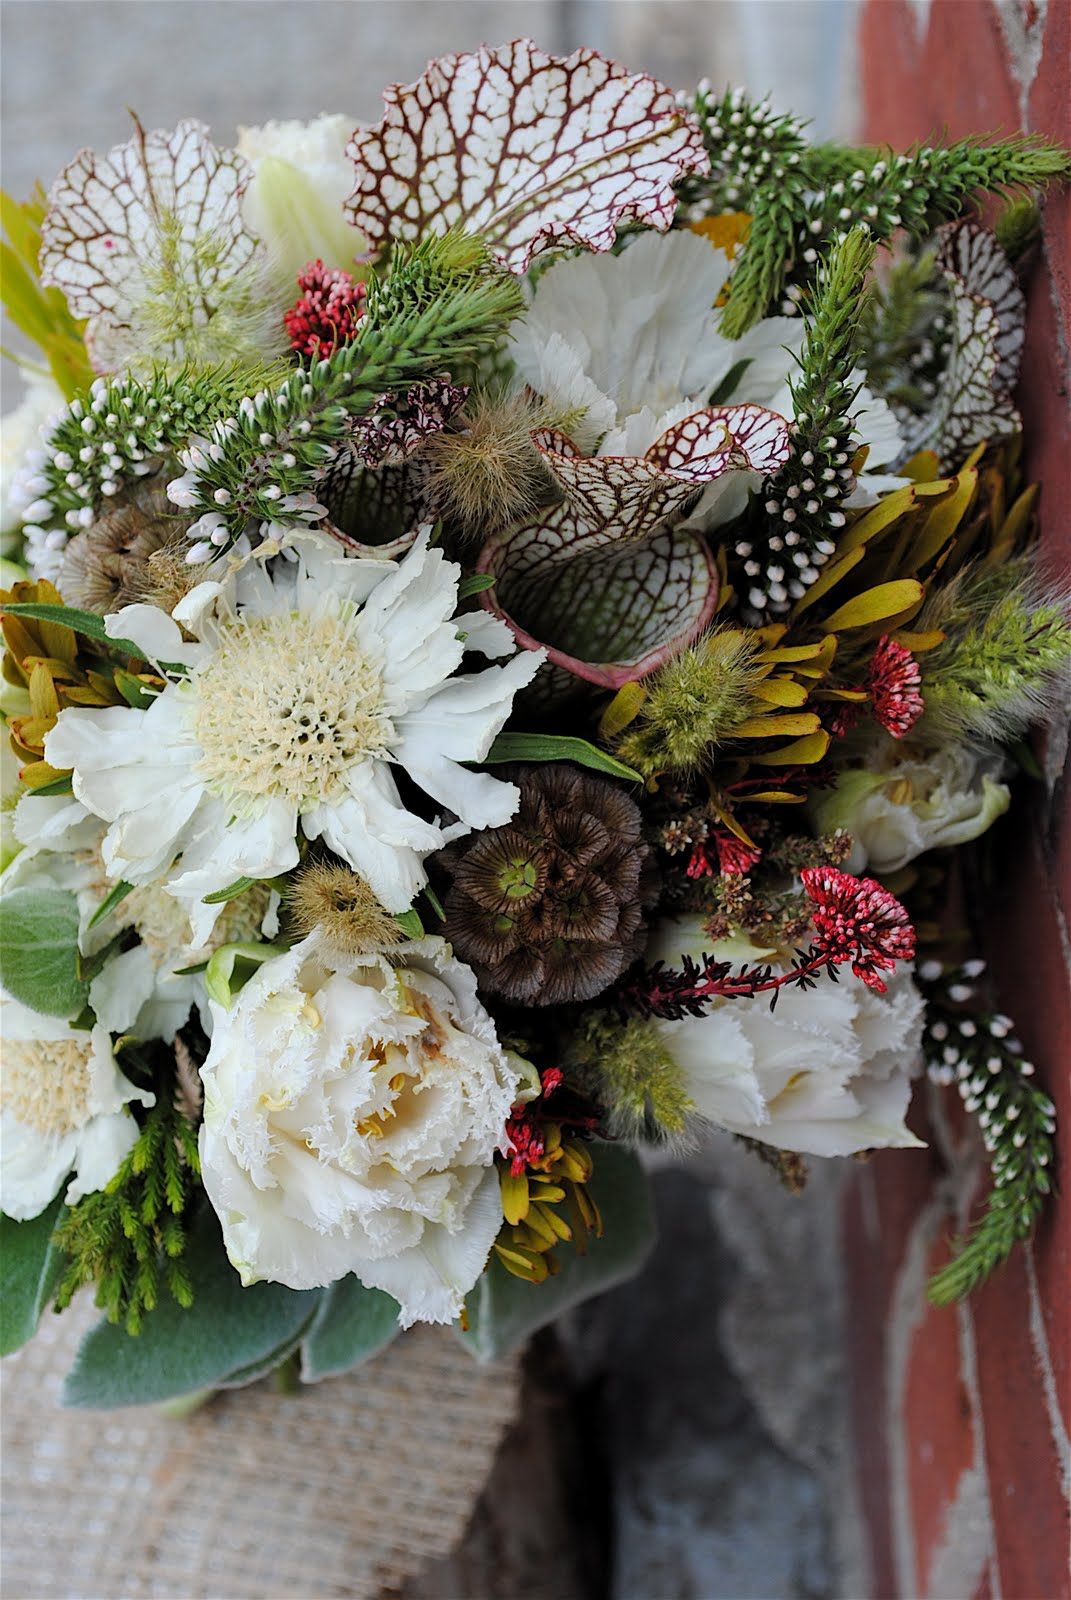 Bridal Florist Nyc : Rebecca shepherd floral design bohemian wedding flowers nyc